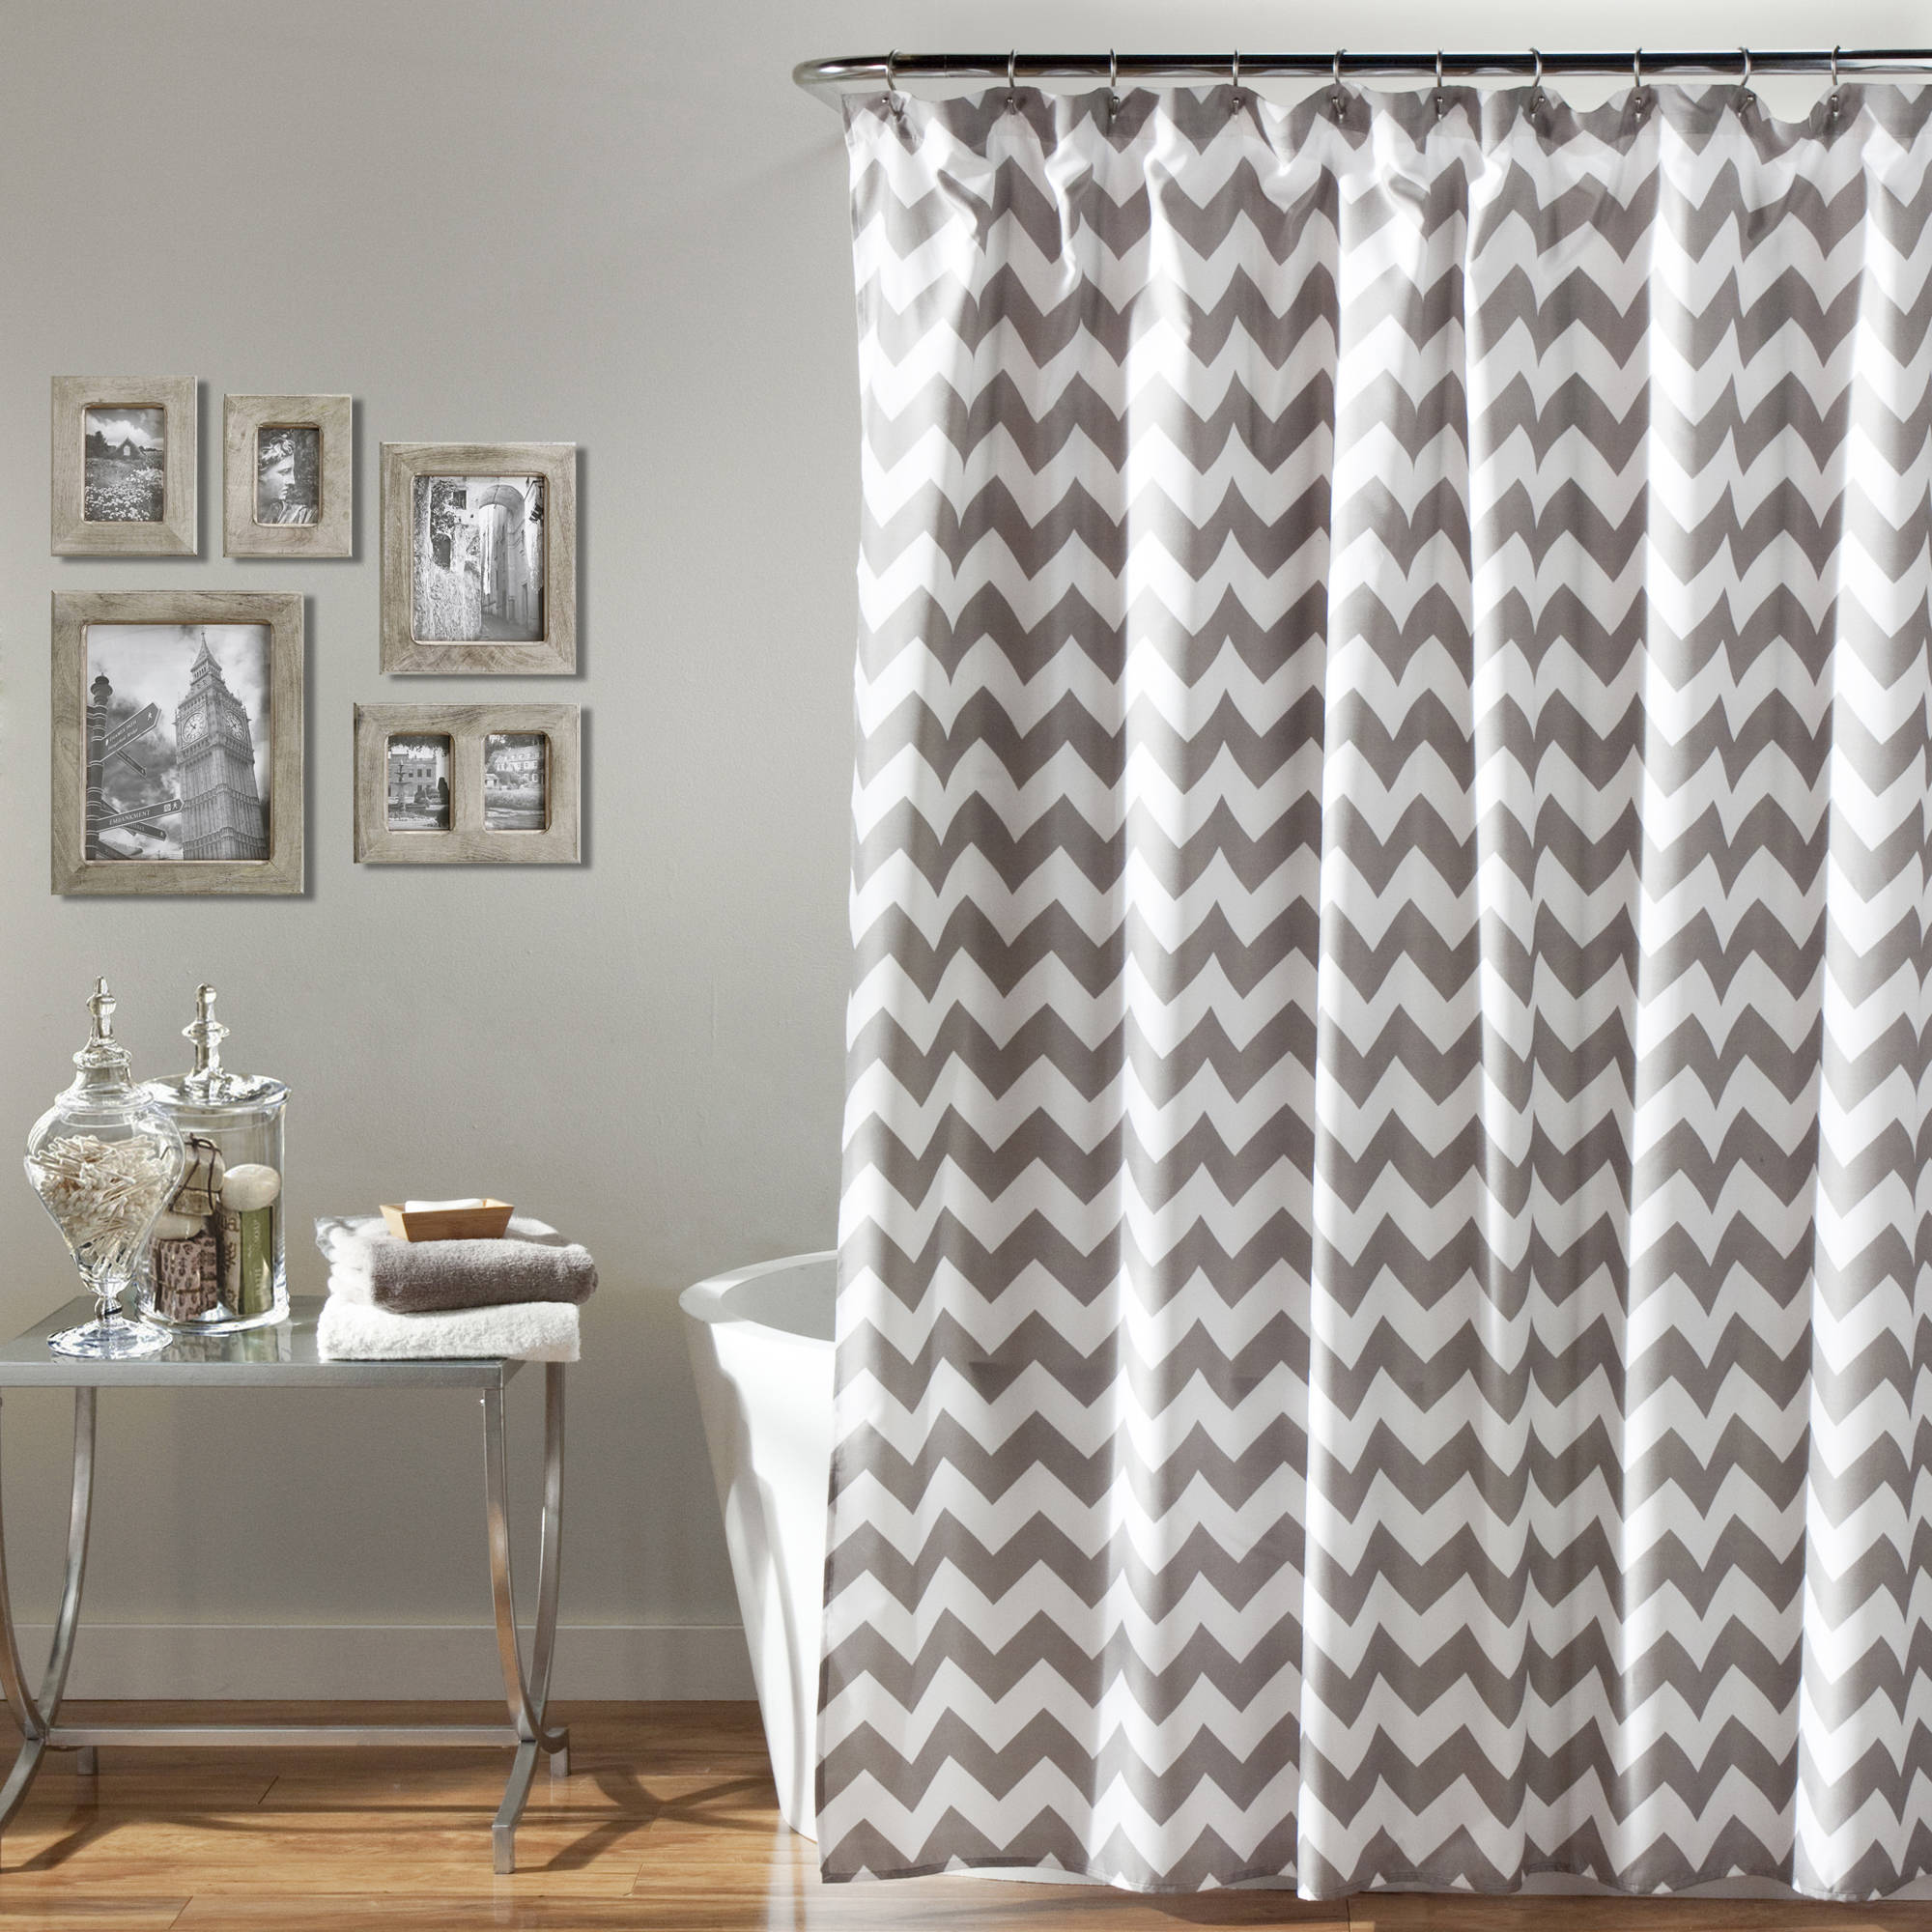 Bath - Water resistant bathroom window curtains for bathroom decor ideas